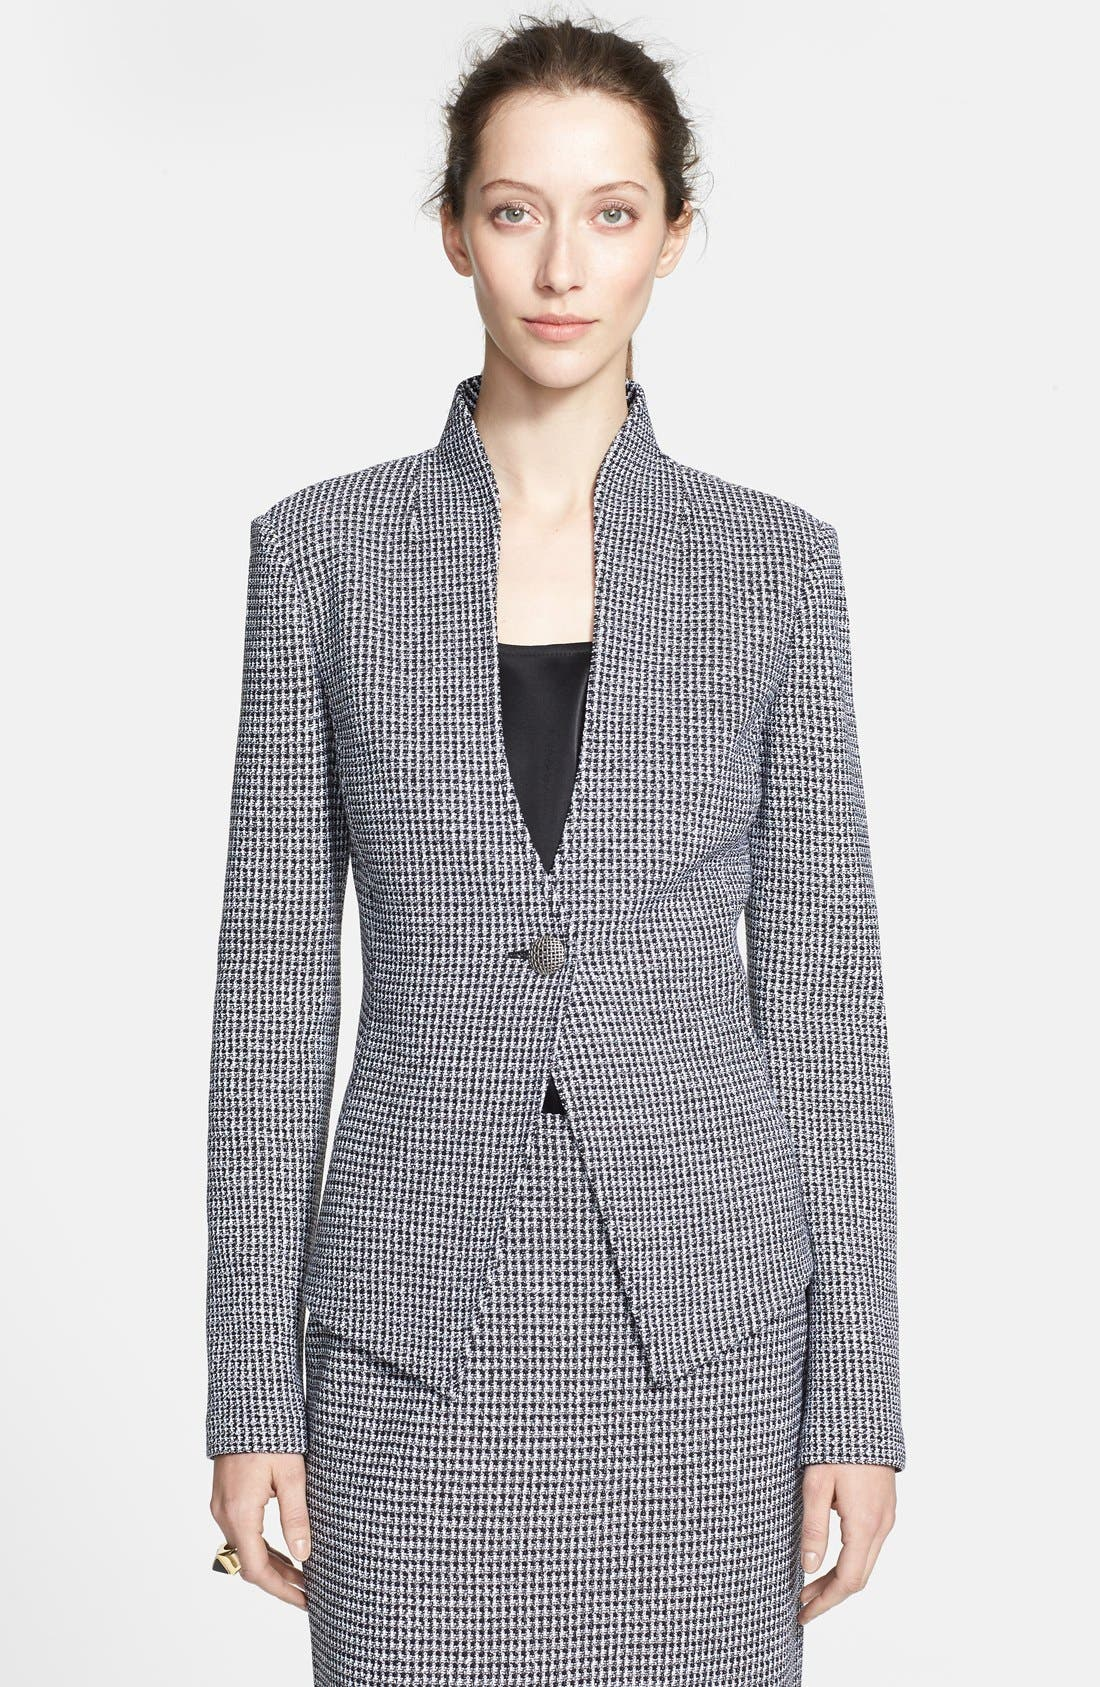 Alternate Image 1 Selected - St. John Collection Microcheck Knit Jacket